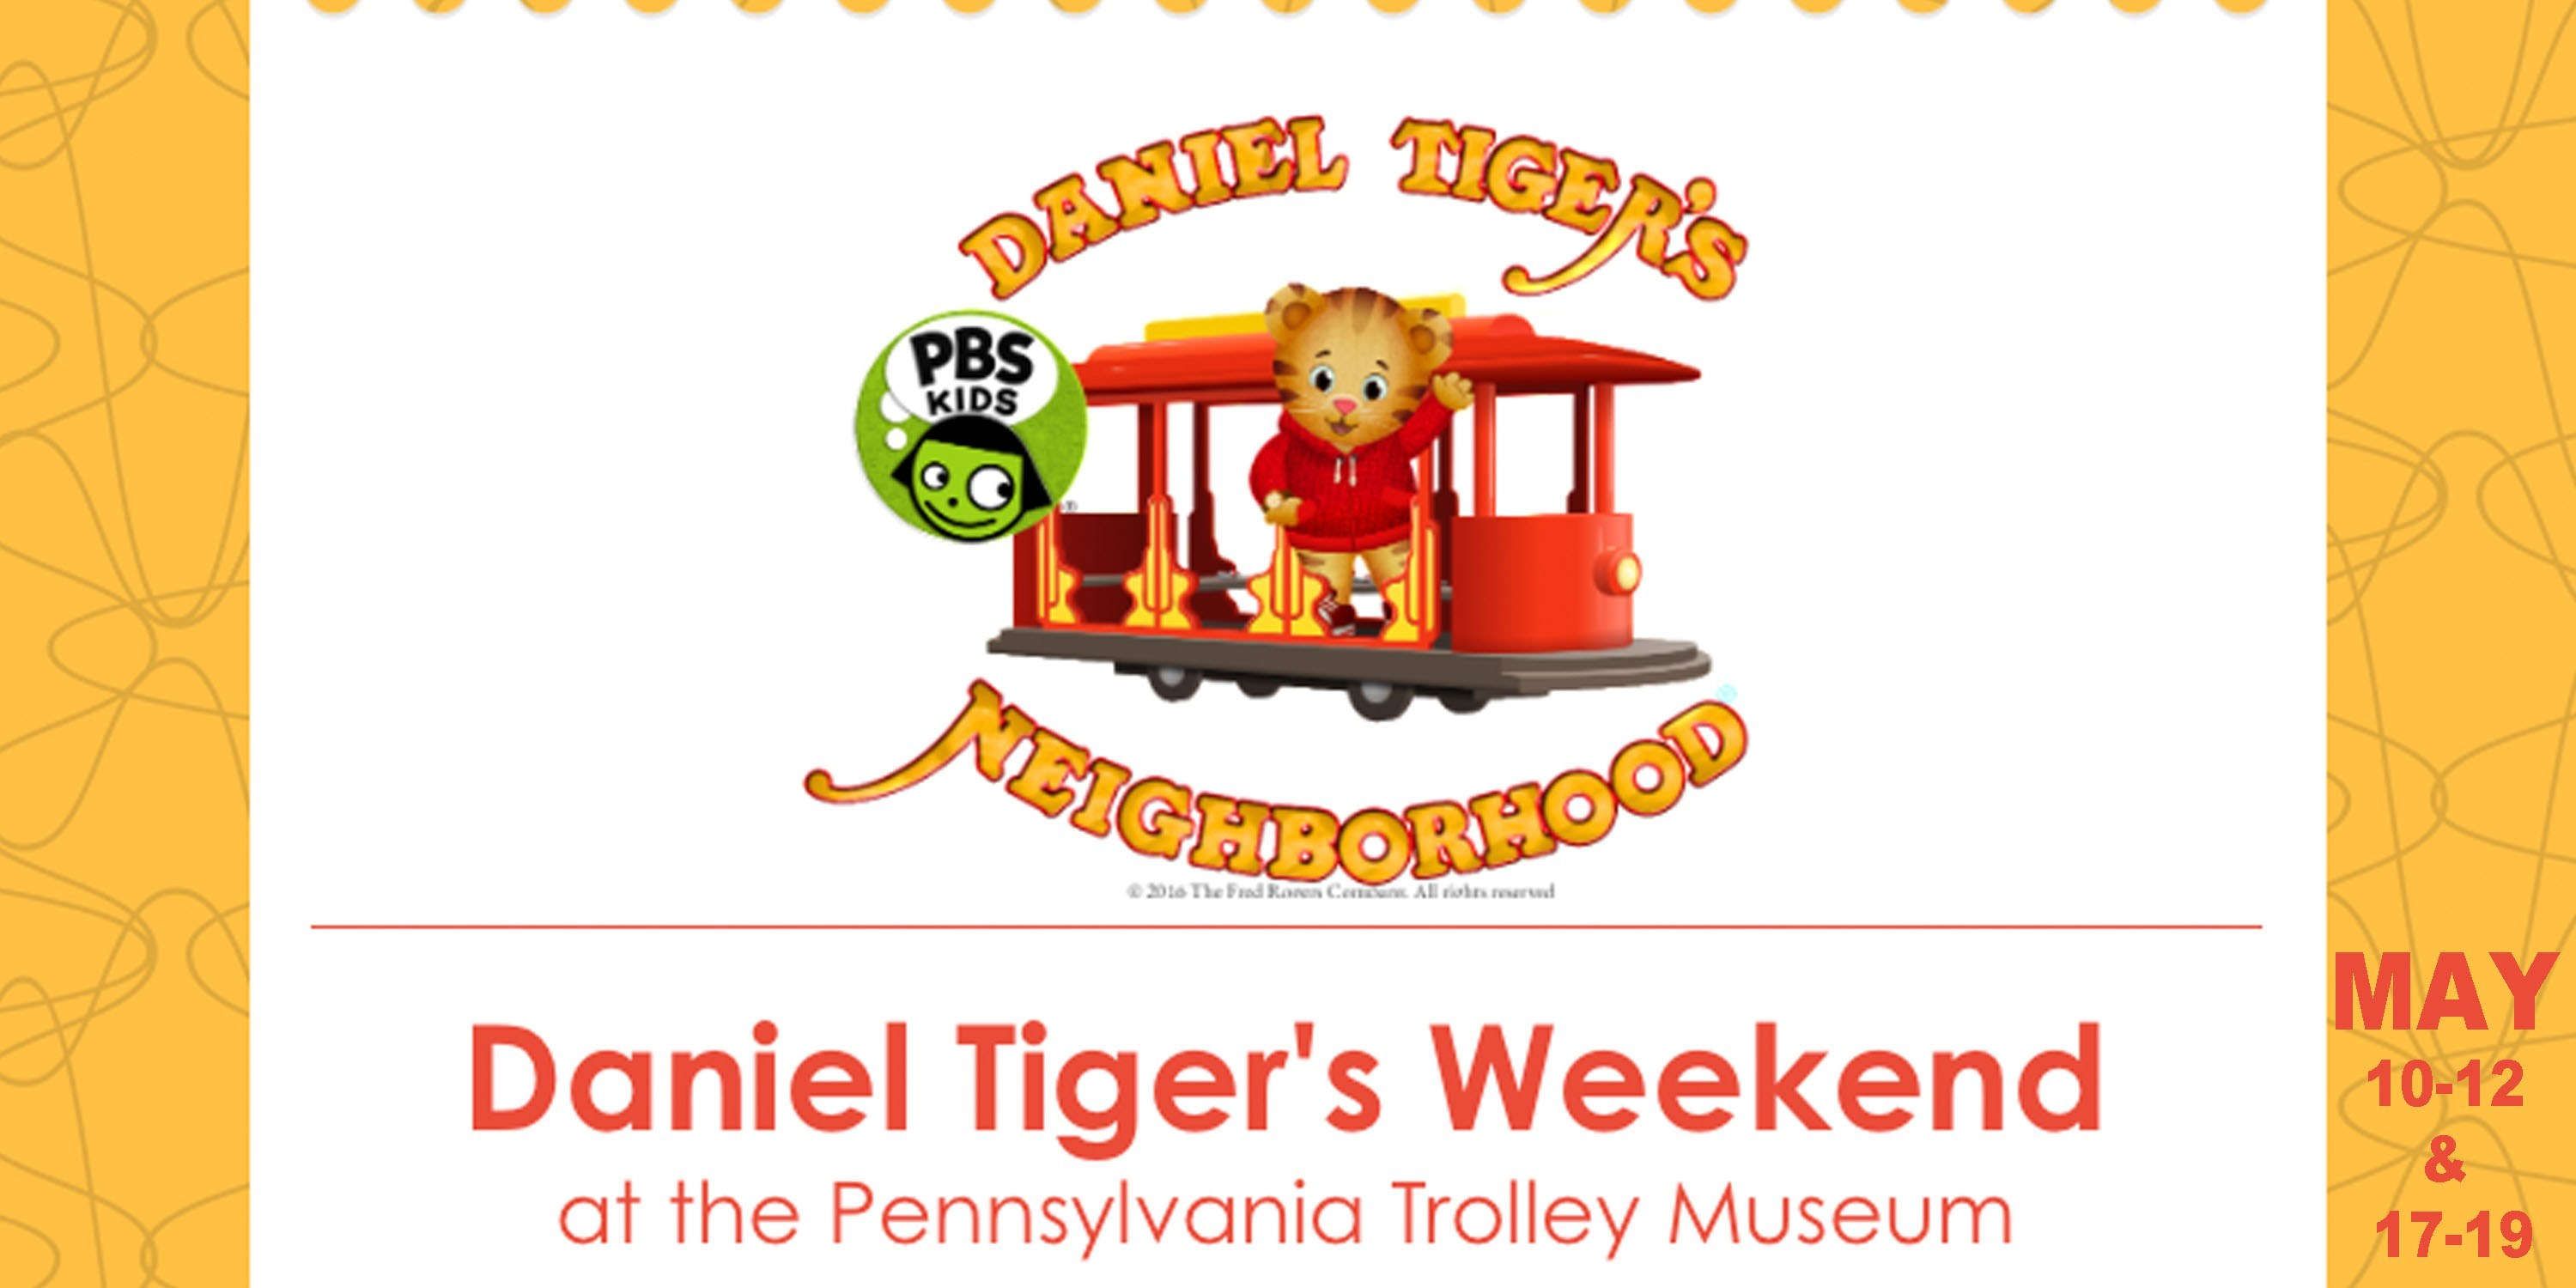 Daniel Tiger's Weekend at Pennsylvania Trolley Museum.